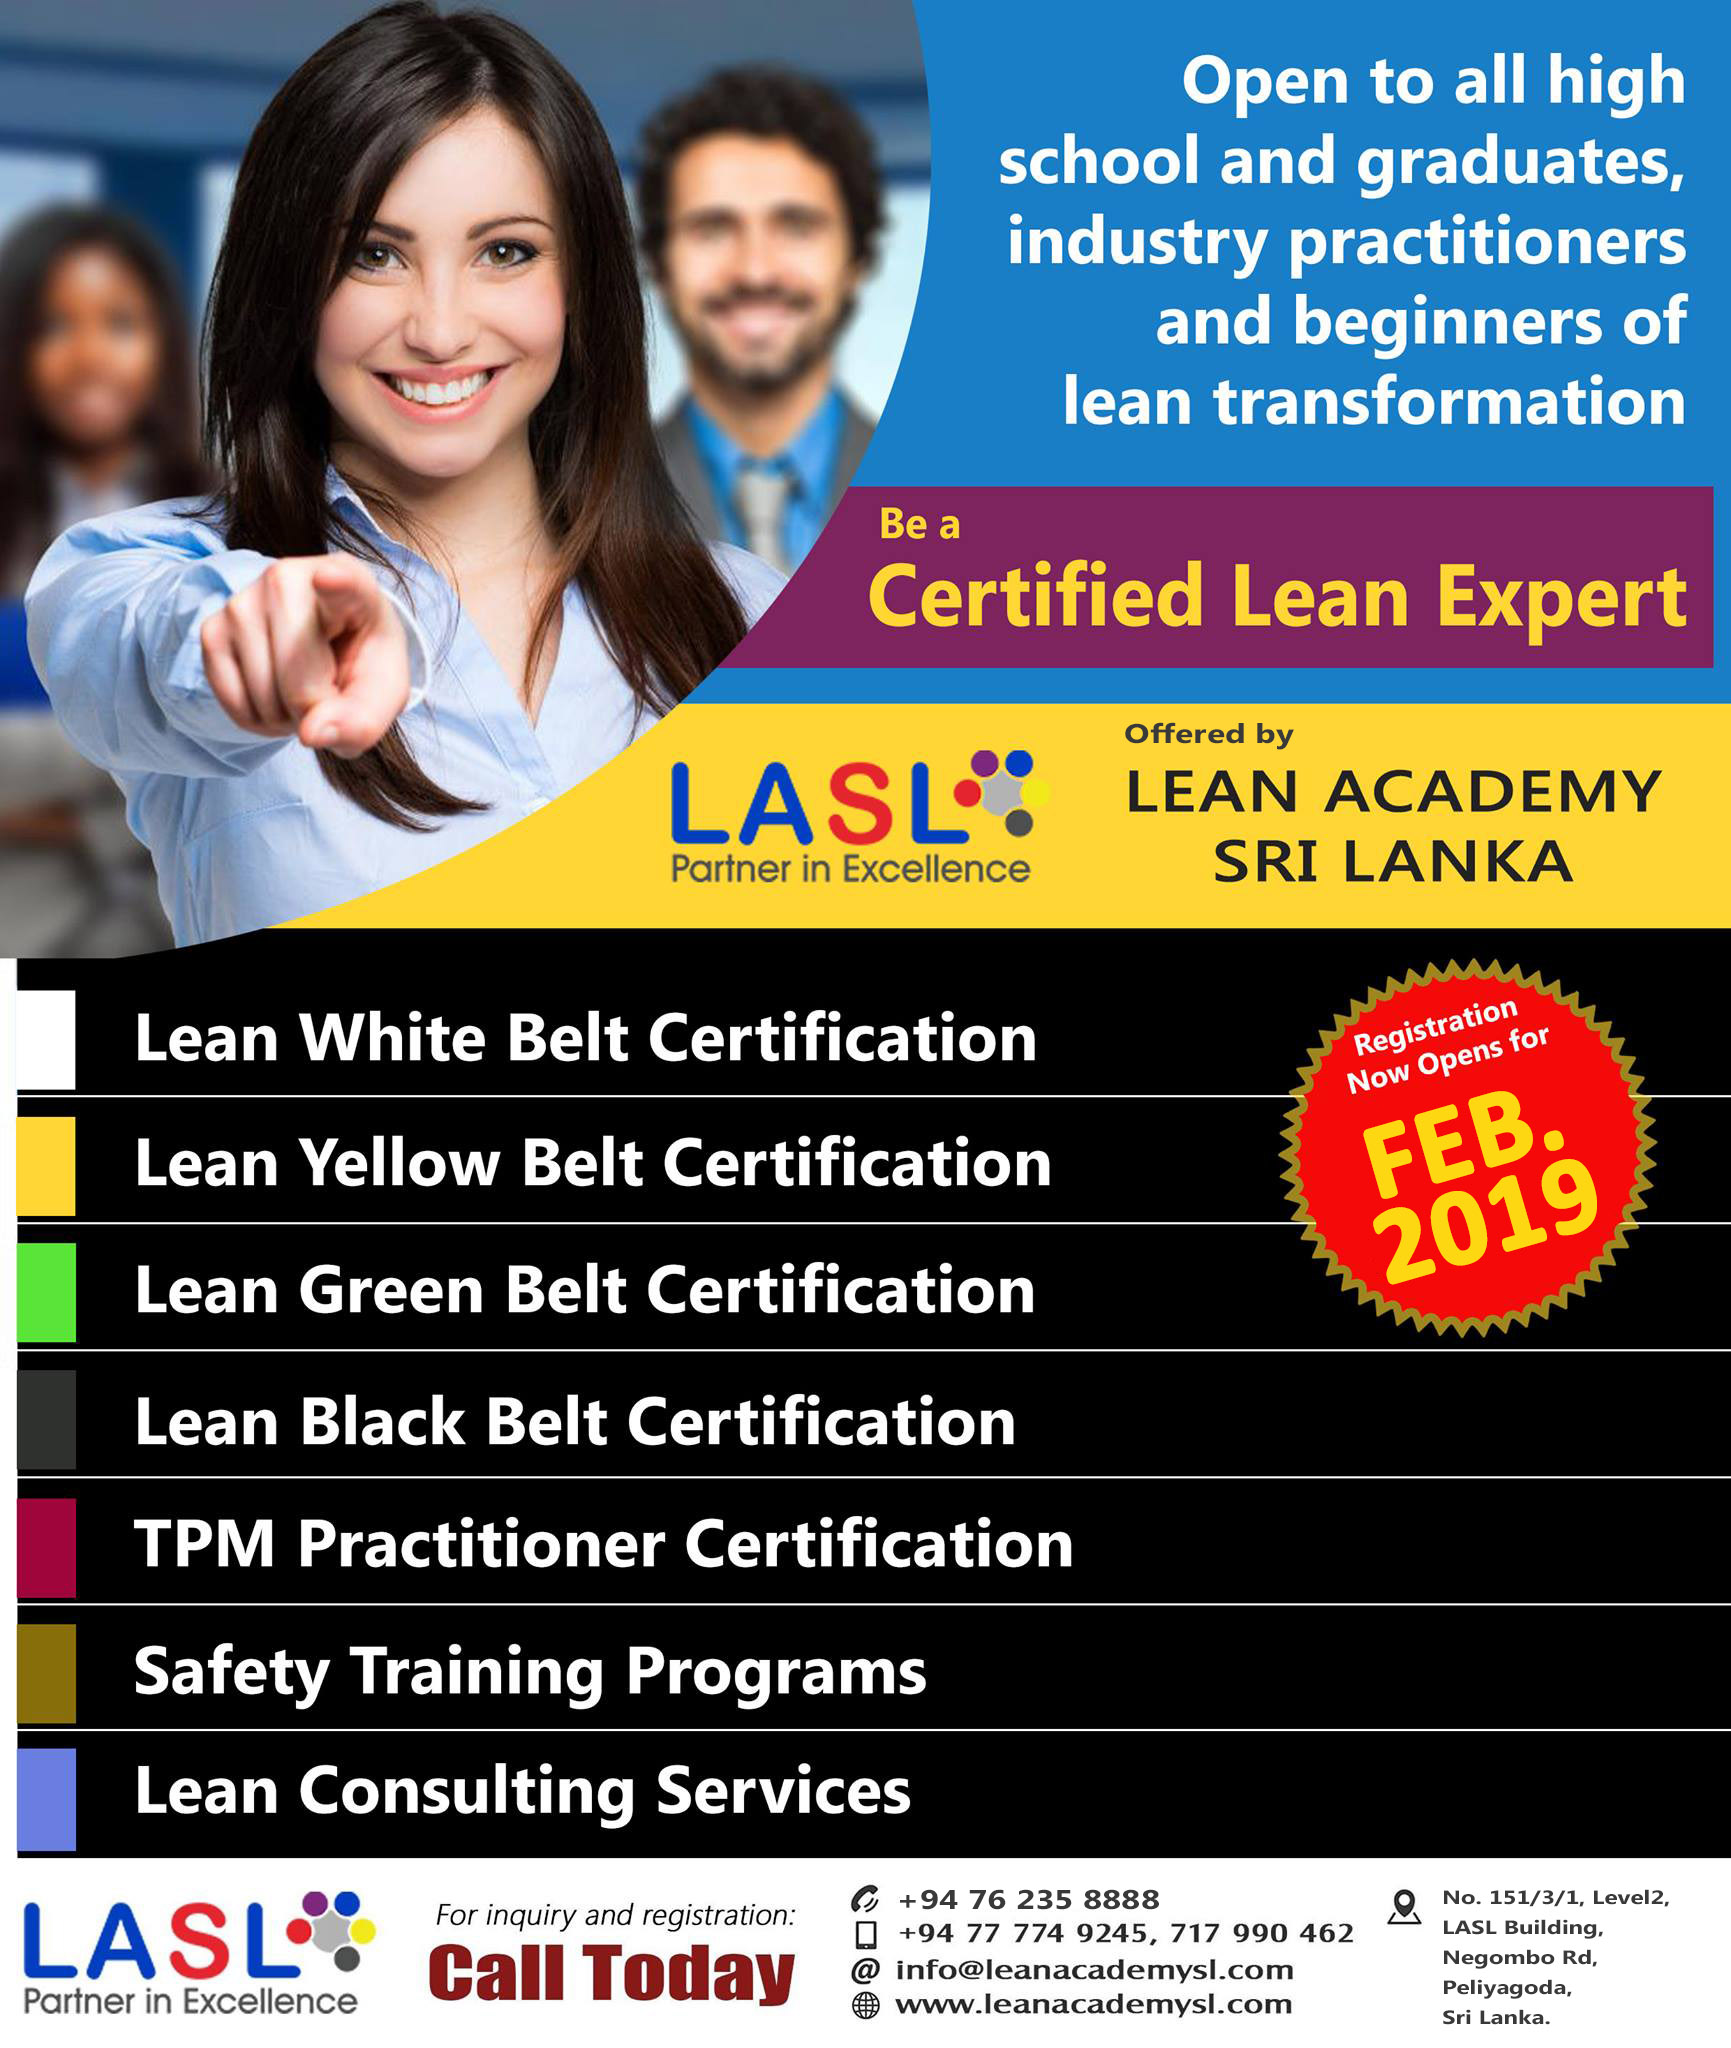 LASL REGISTRATIONS NOW OPEN FOR February and March 2019